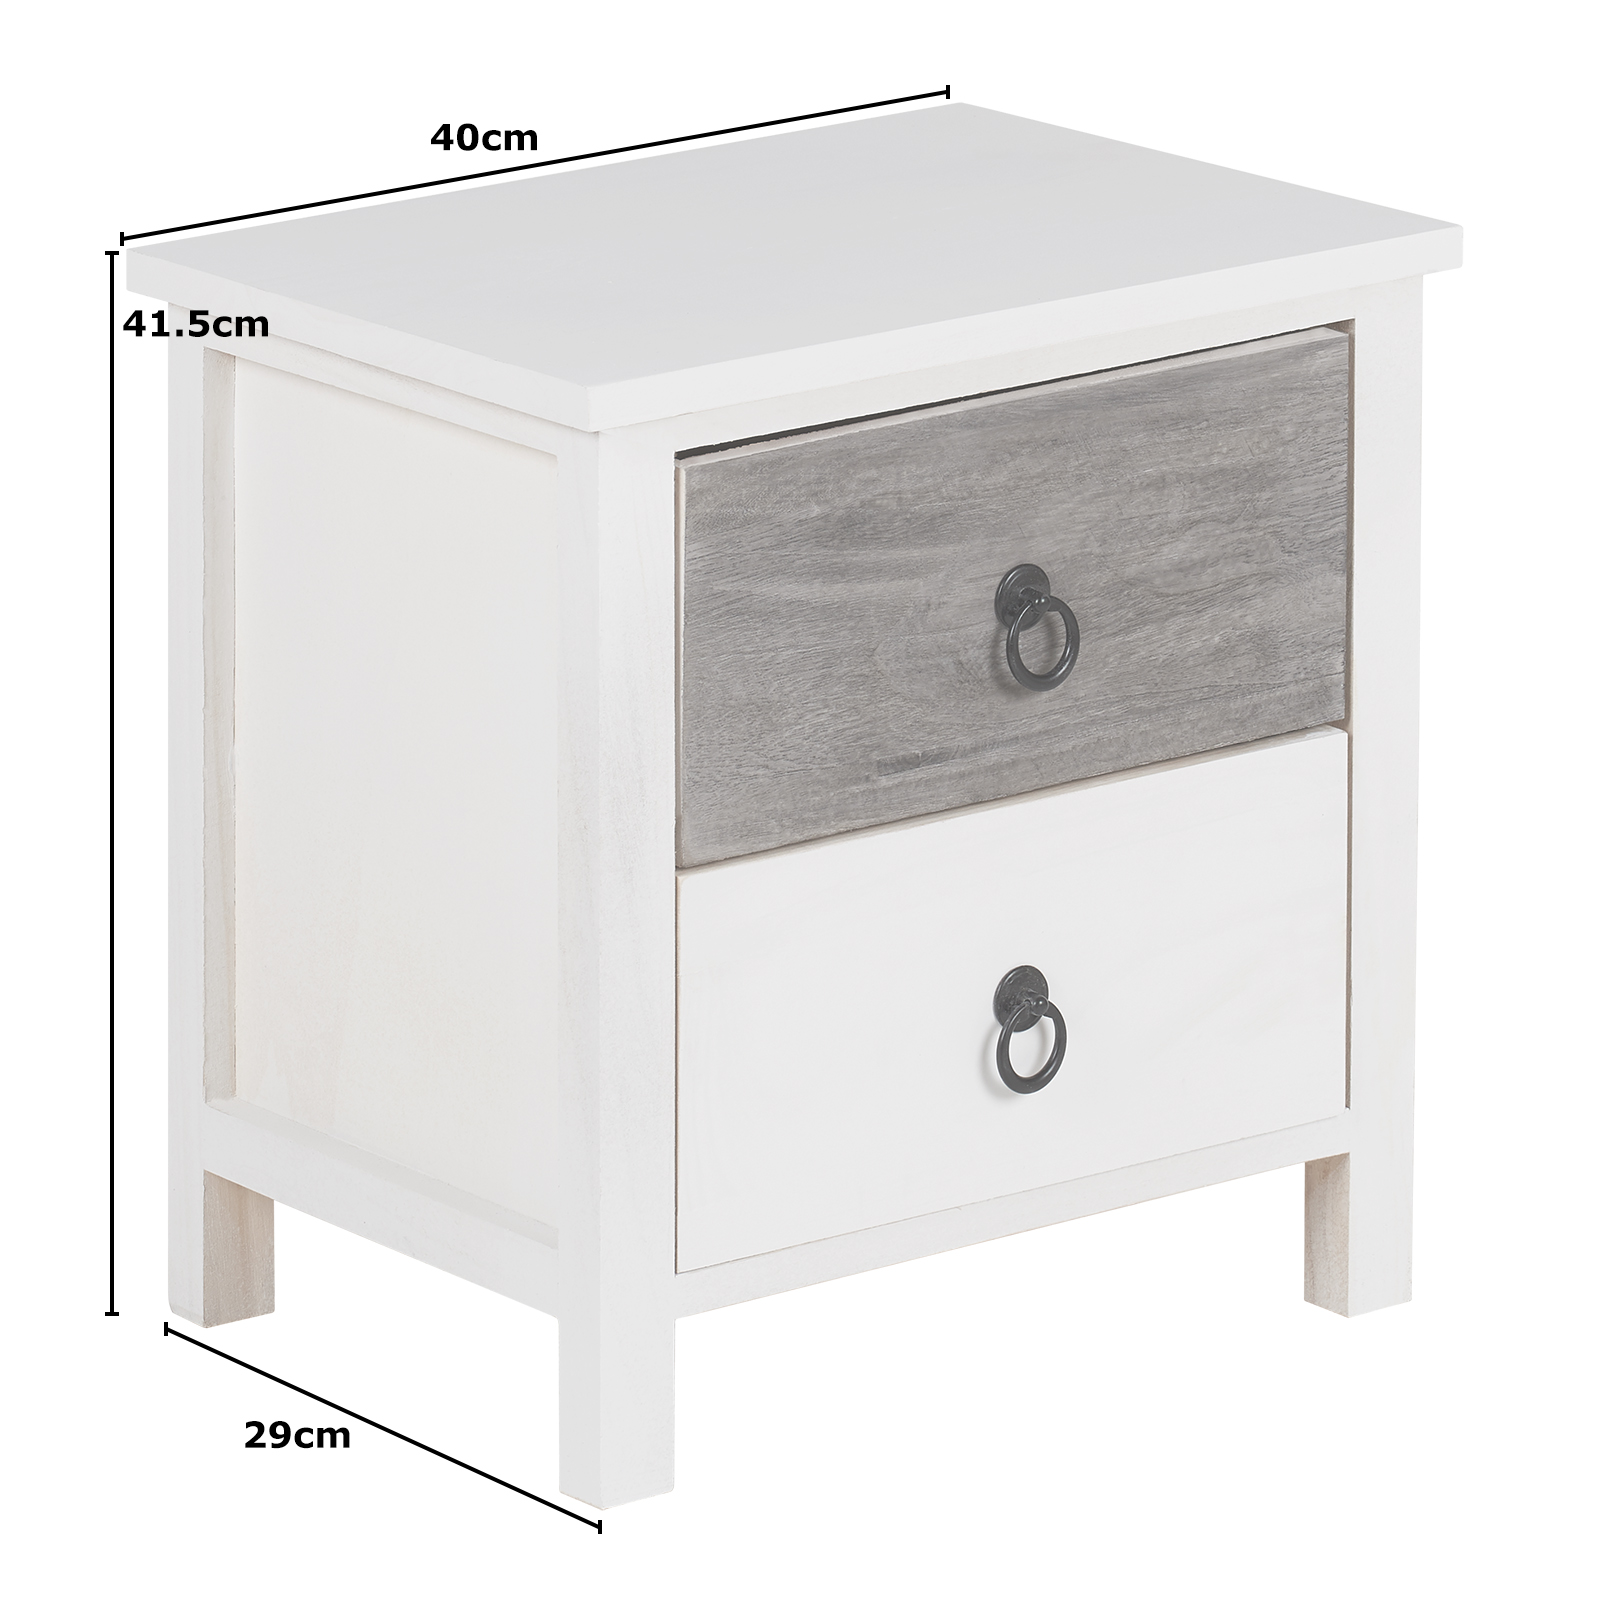 Details About Hartleys Small White Bedside Table 2 Drawer Nightstand Bedroom Furniture